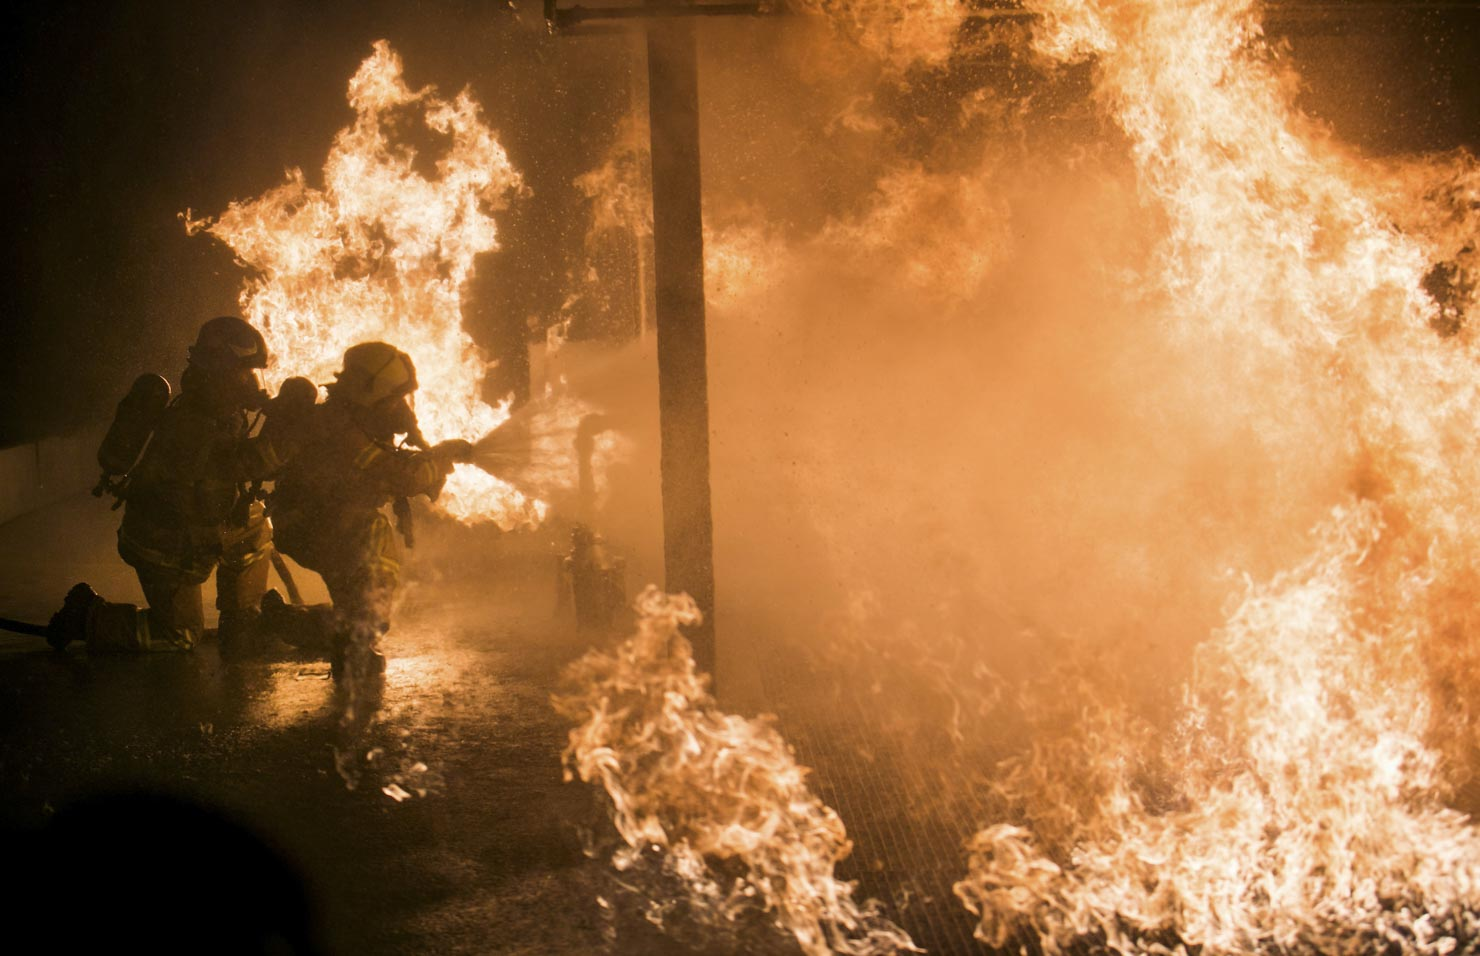 Melbourne Fire Brigade officers dowse a huge fire with a water hose